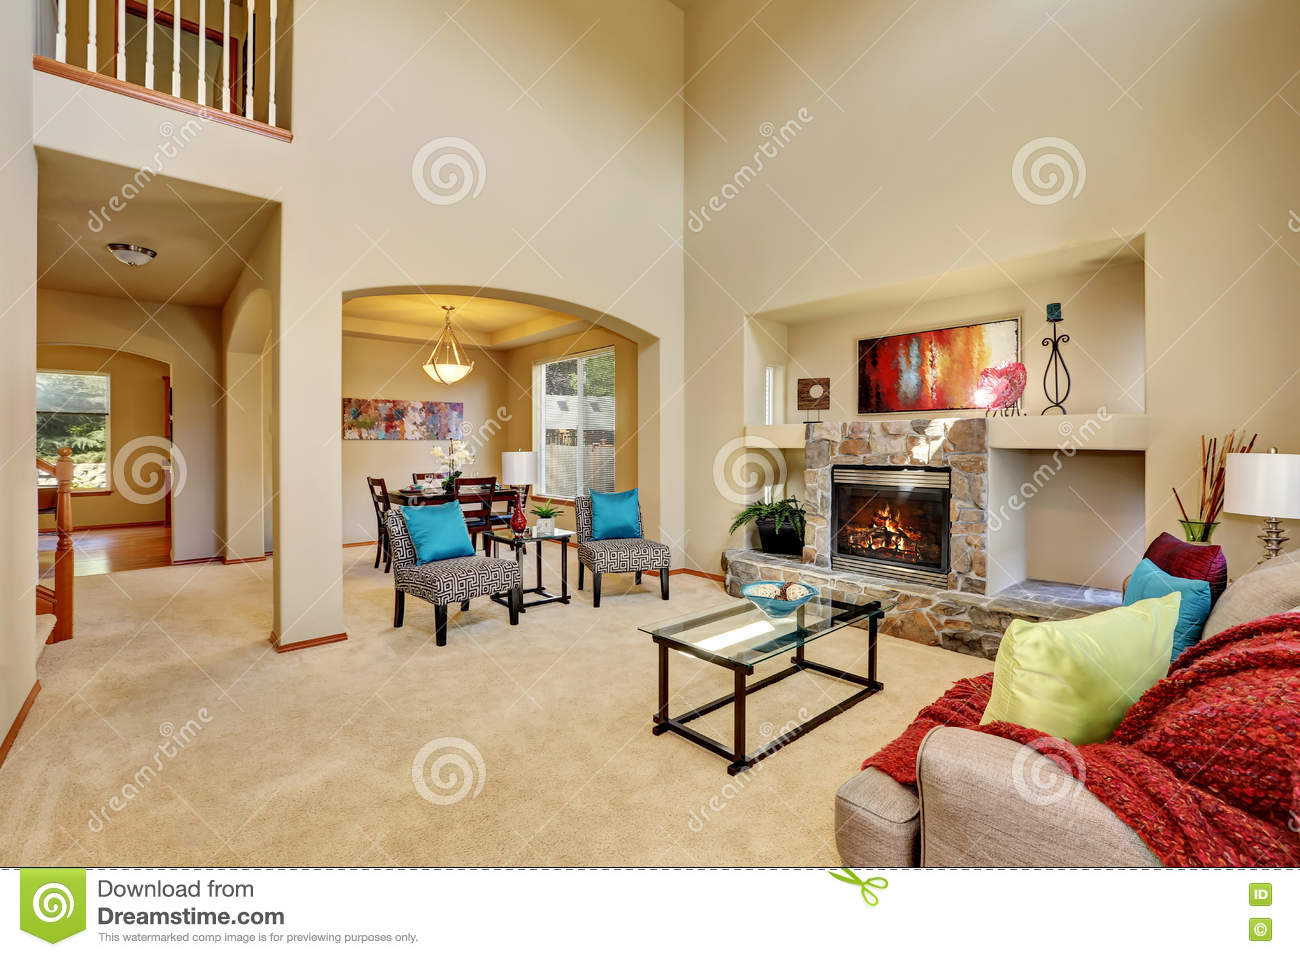 Cozy Luxury Family Room With High Ceiling And Arched Doorway ...